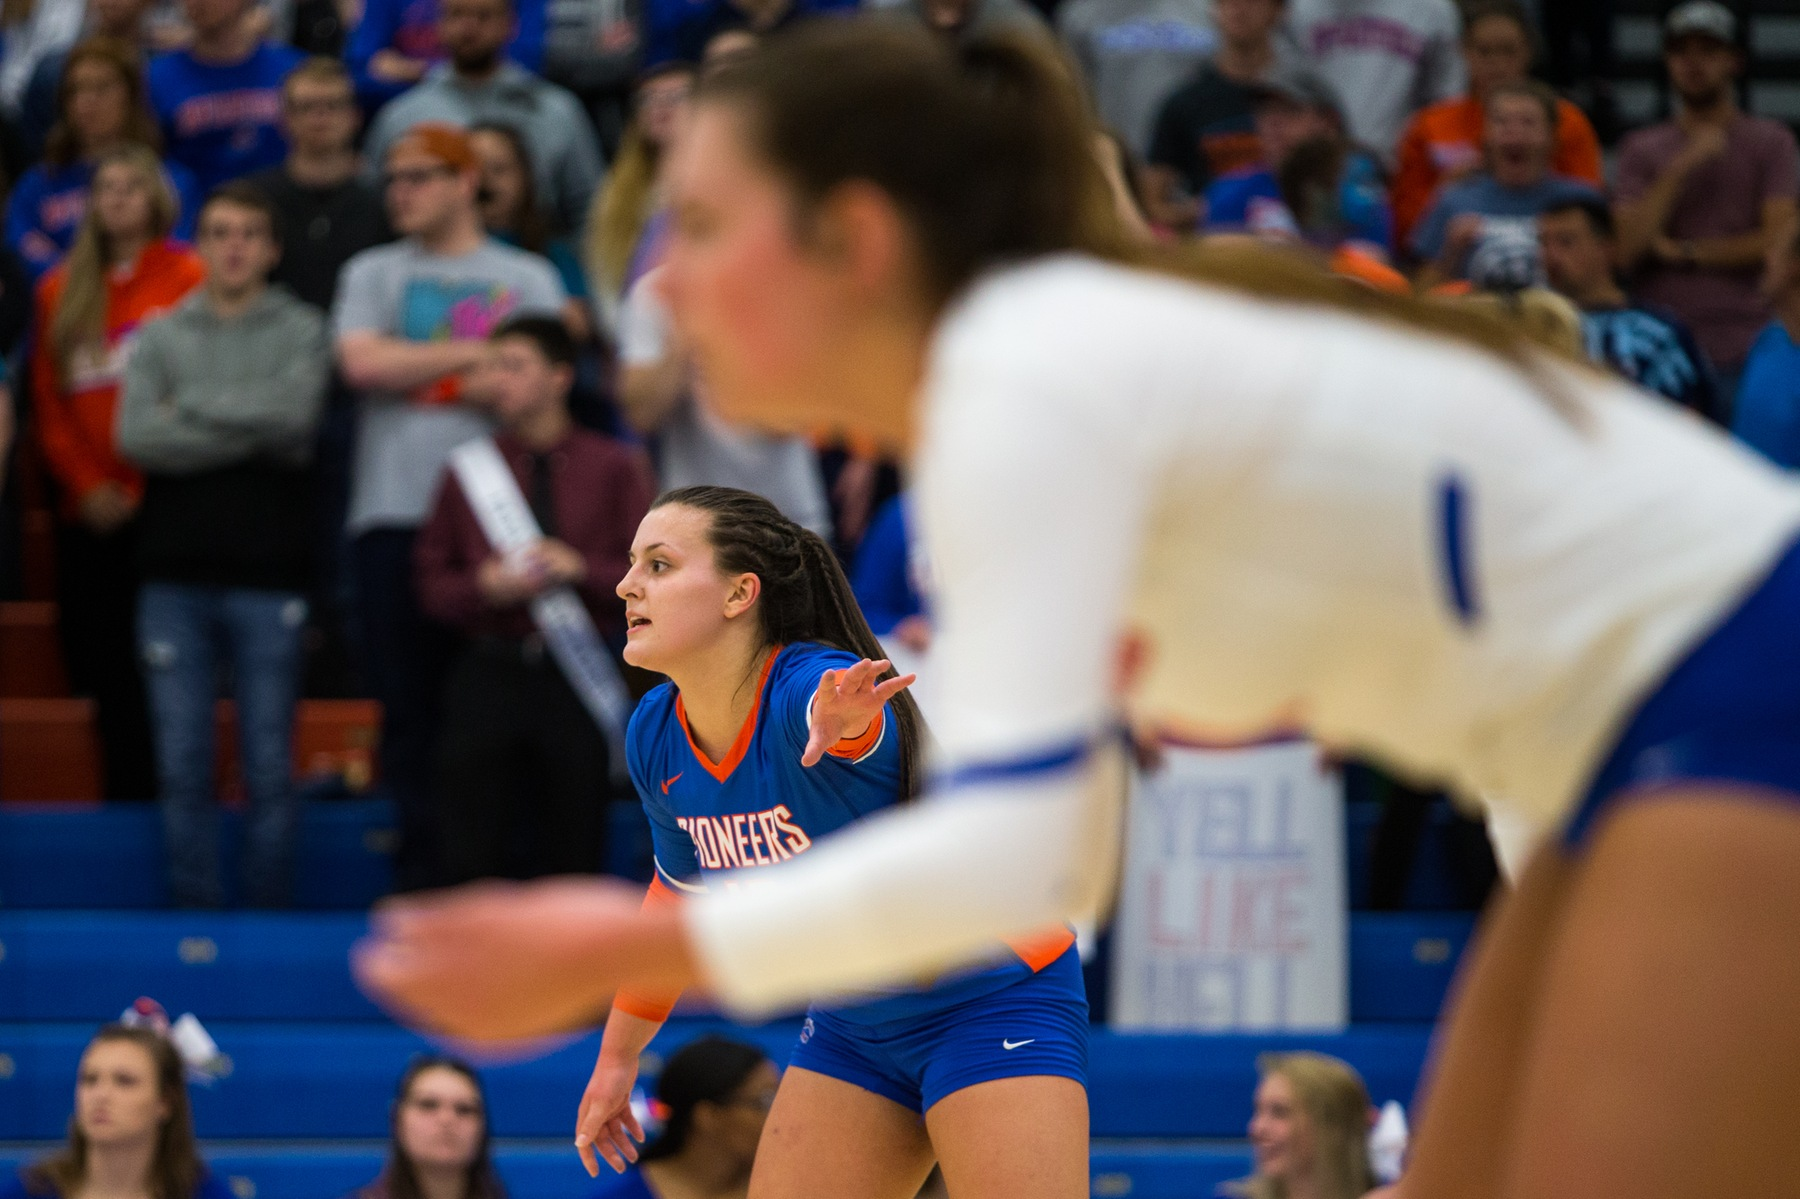 Volleyball season ends with road loss to River Falls